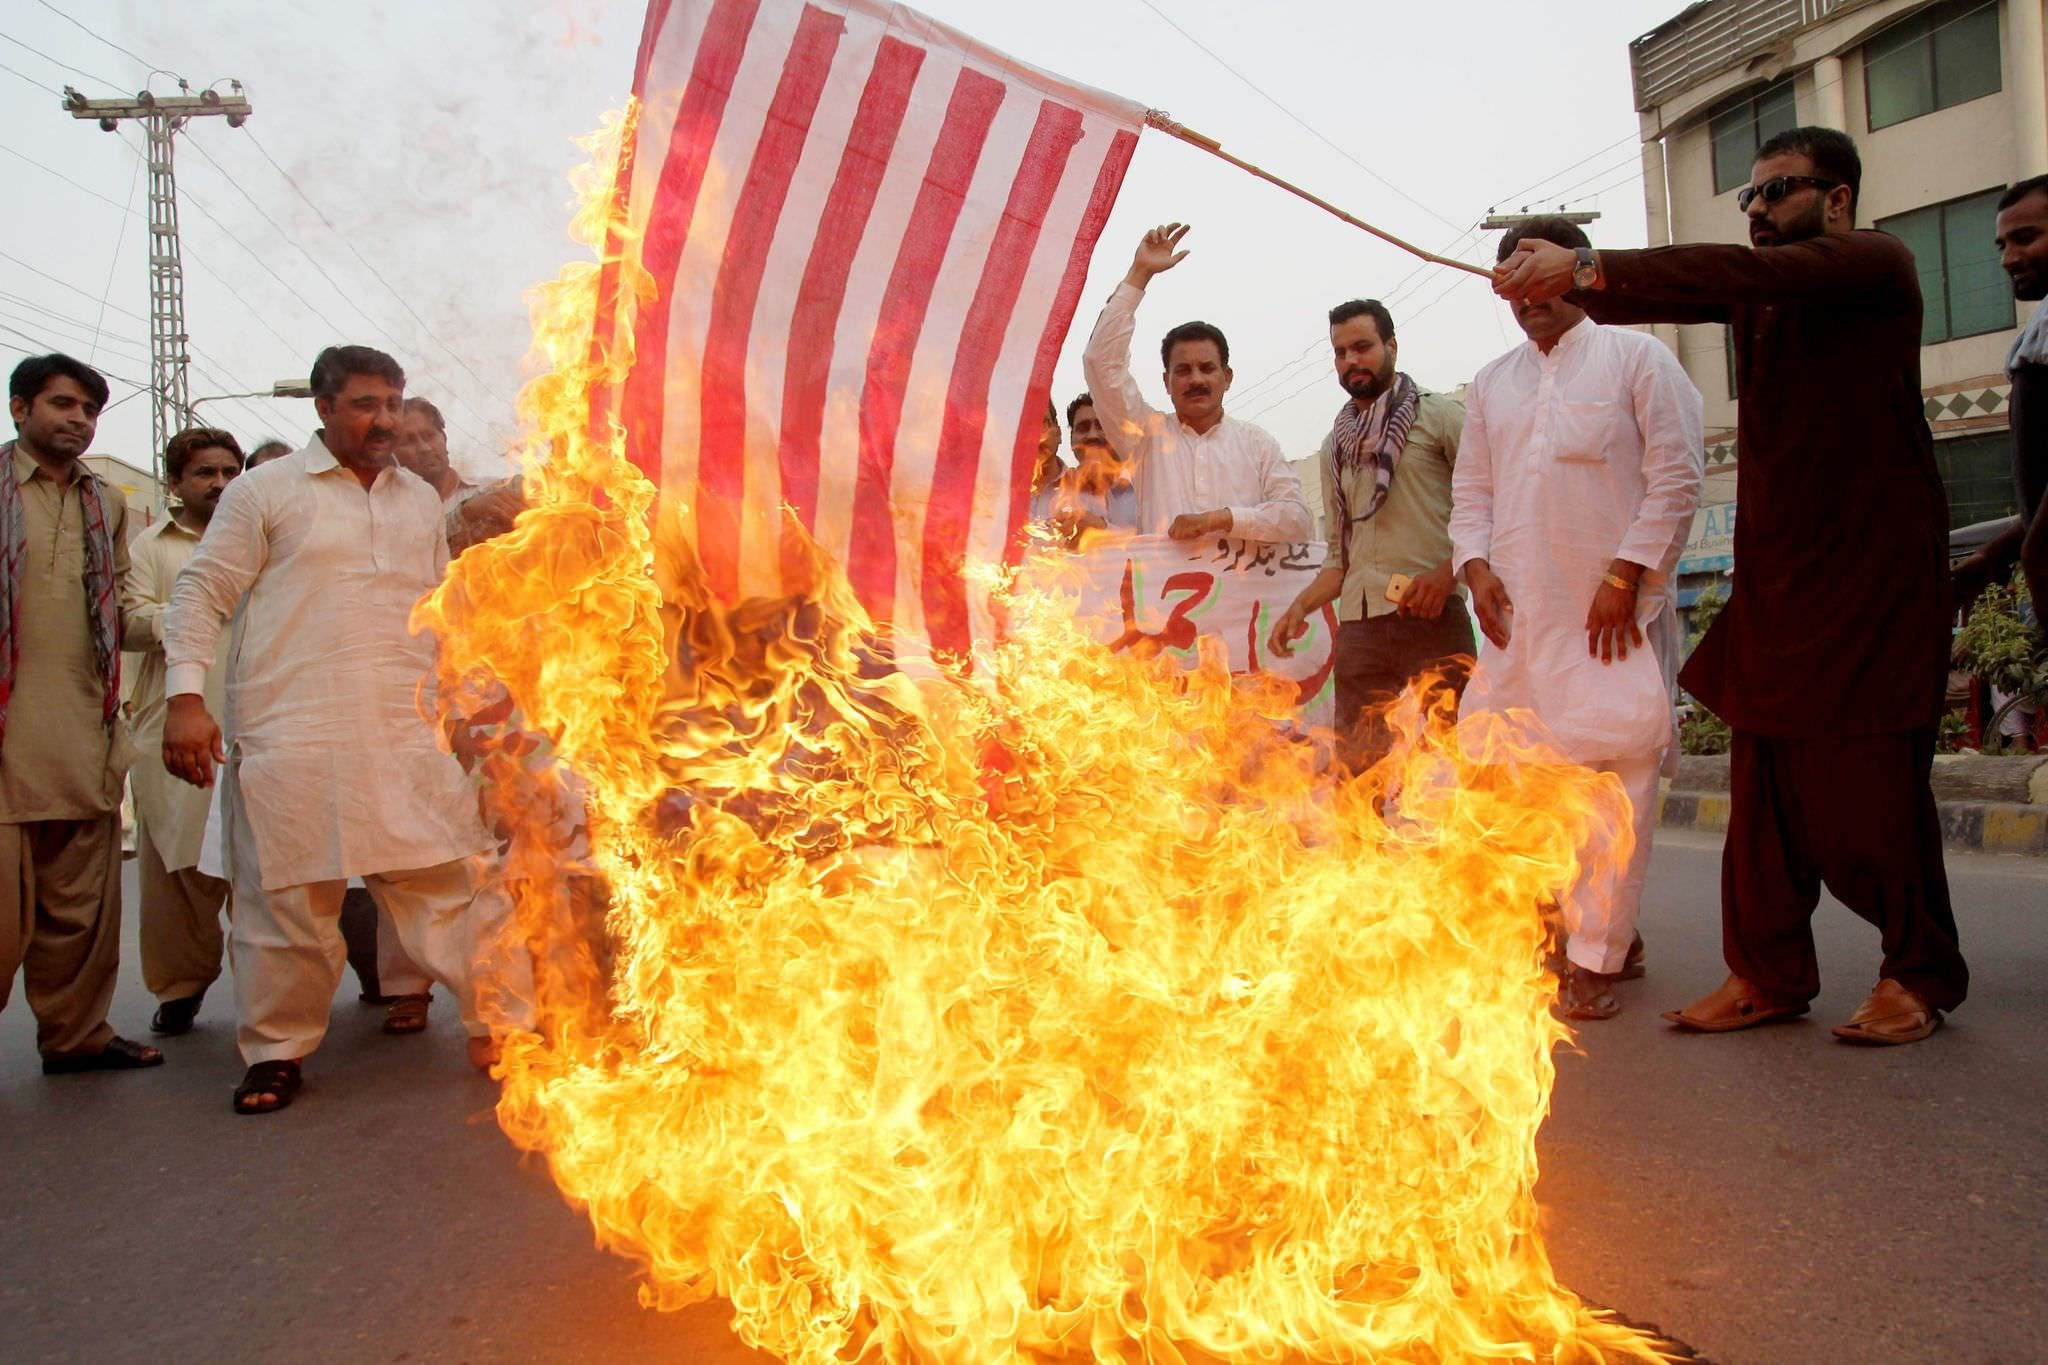 A Pakistani demonstrator holds a burning US flag as others shout slogans during a protest in Multan on May 24, 2016, against a US drone strike in Pakistan (AFP Photo)